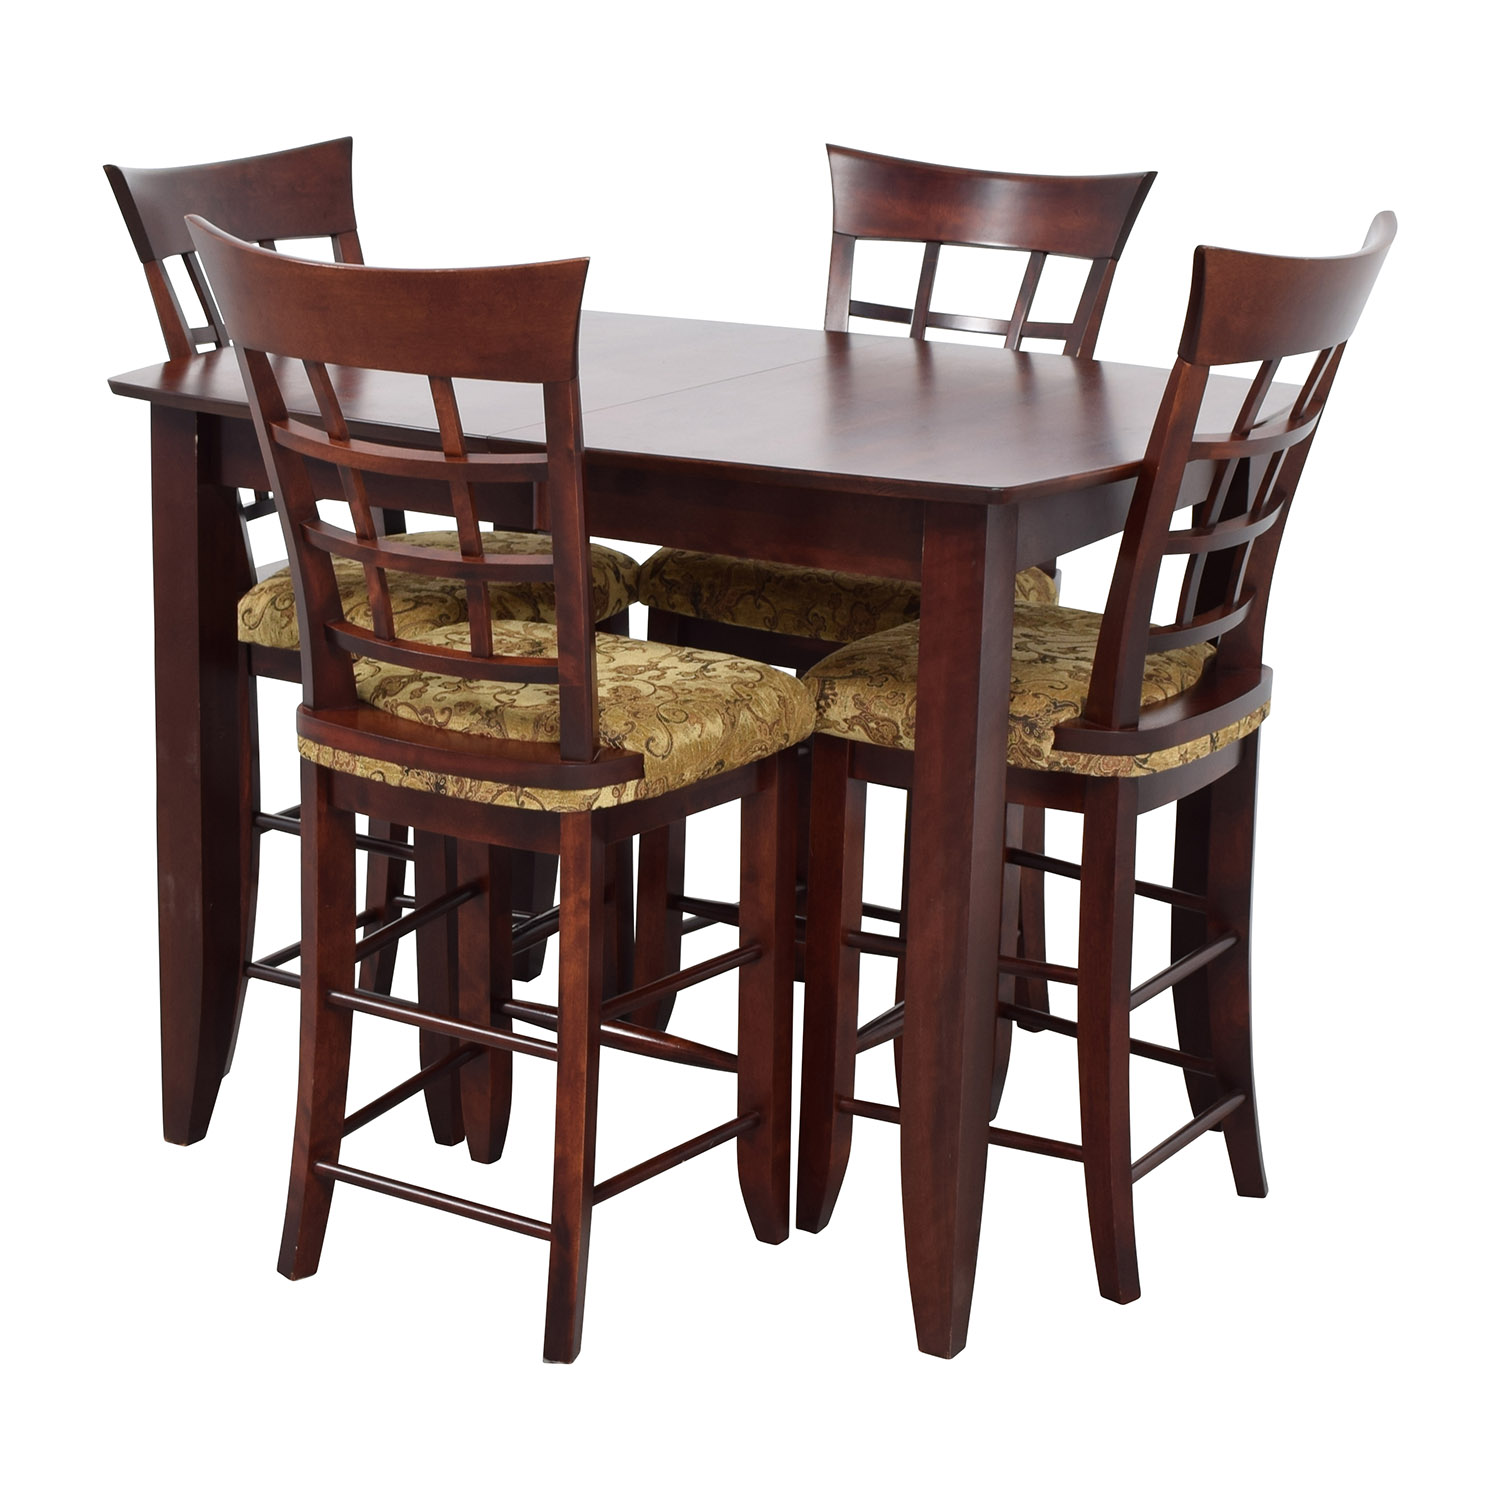 48 off high top dining table with four chairs tables. Black Bedroom Furniture Sets. Home Design Ideas